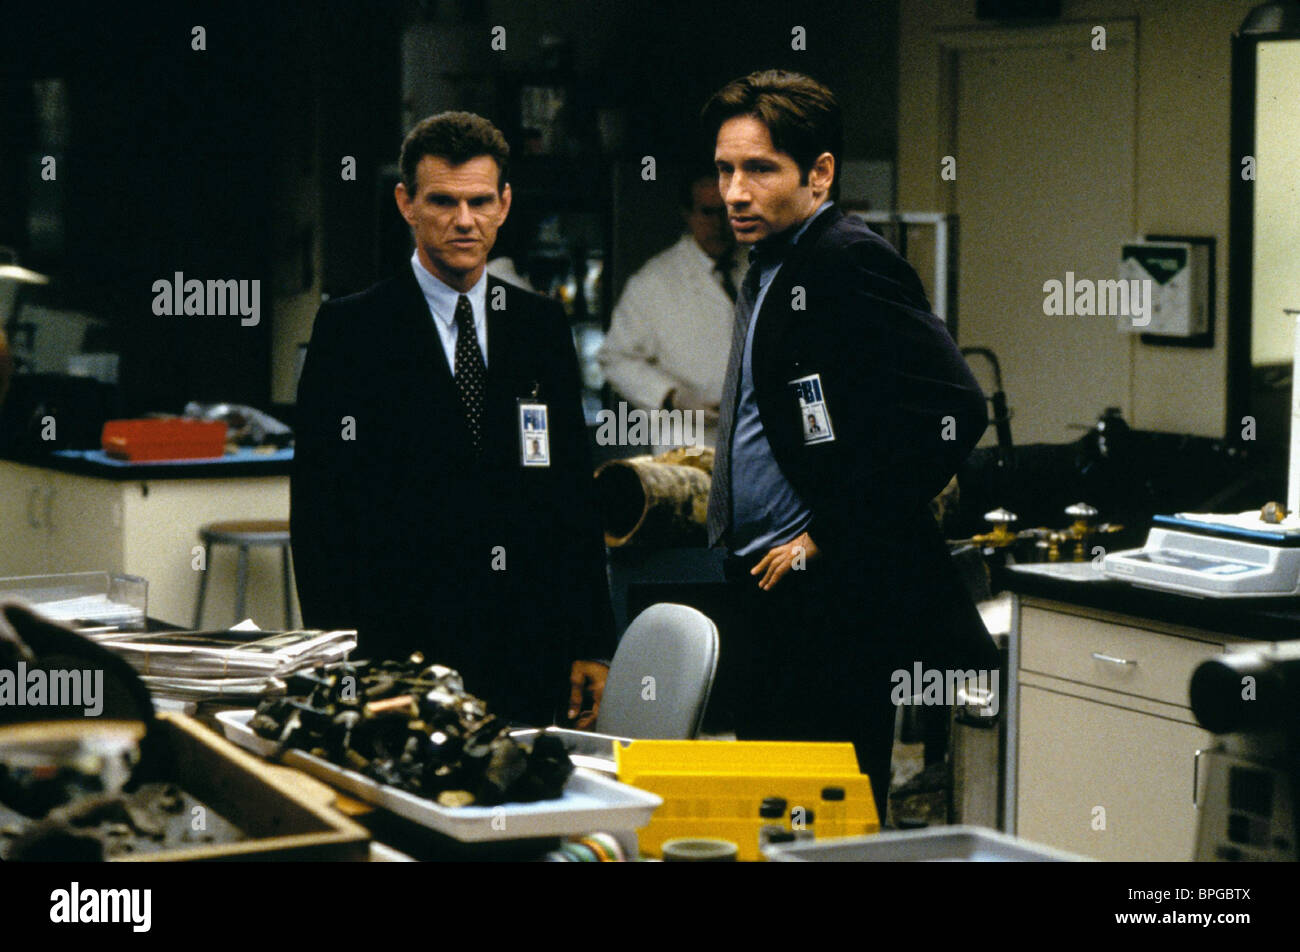 DAVID DUCHOVNY THE X-FILES: THE MOVIE (1998) - Stock Image